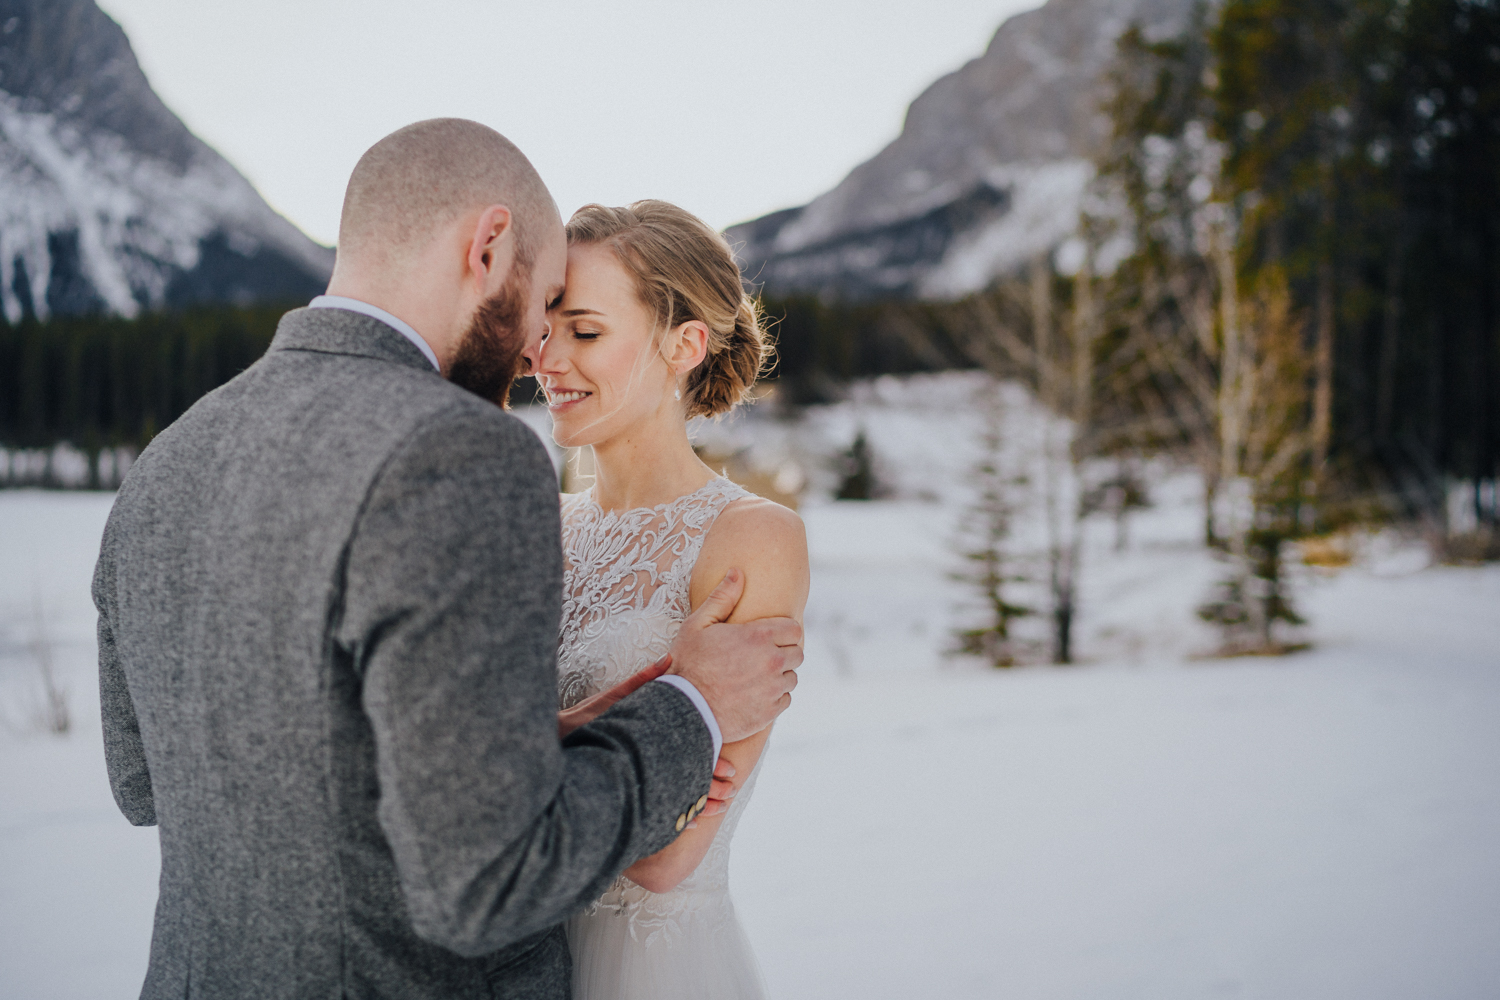 Canmore-Wedding-Photographer-64.jpg